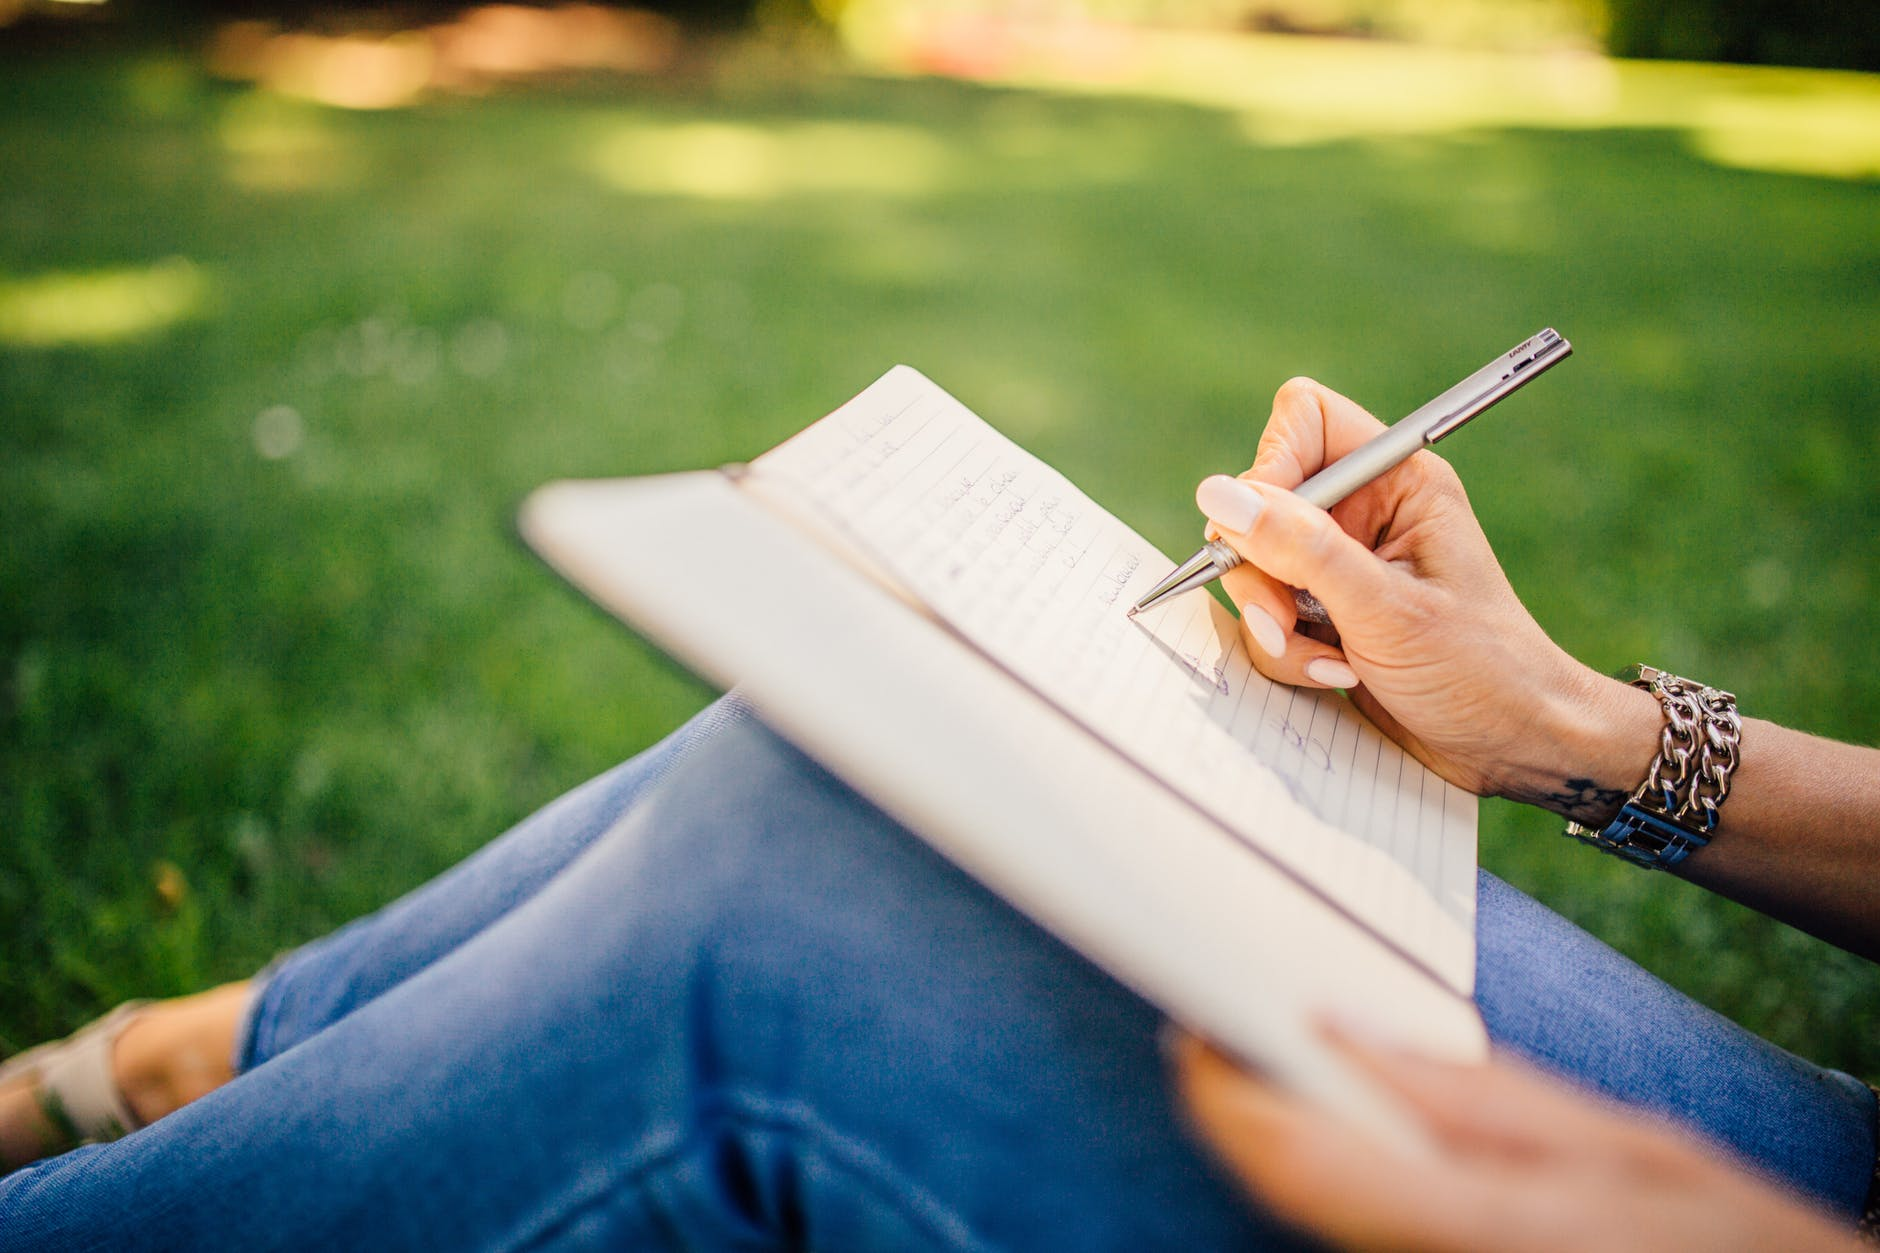 Take time for yourself by keeping a journal